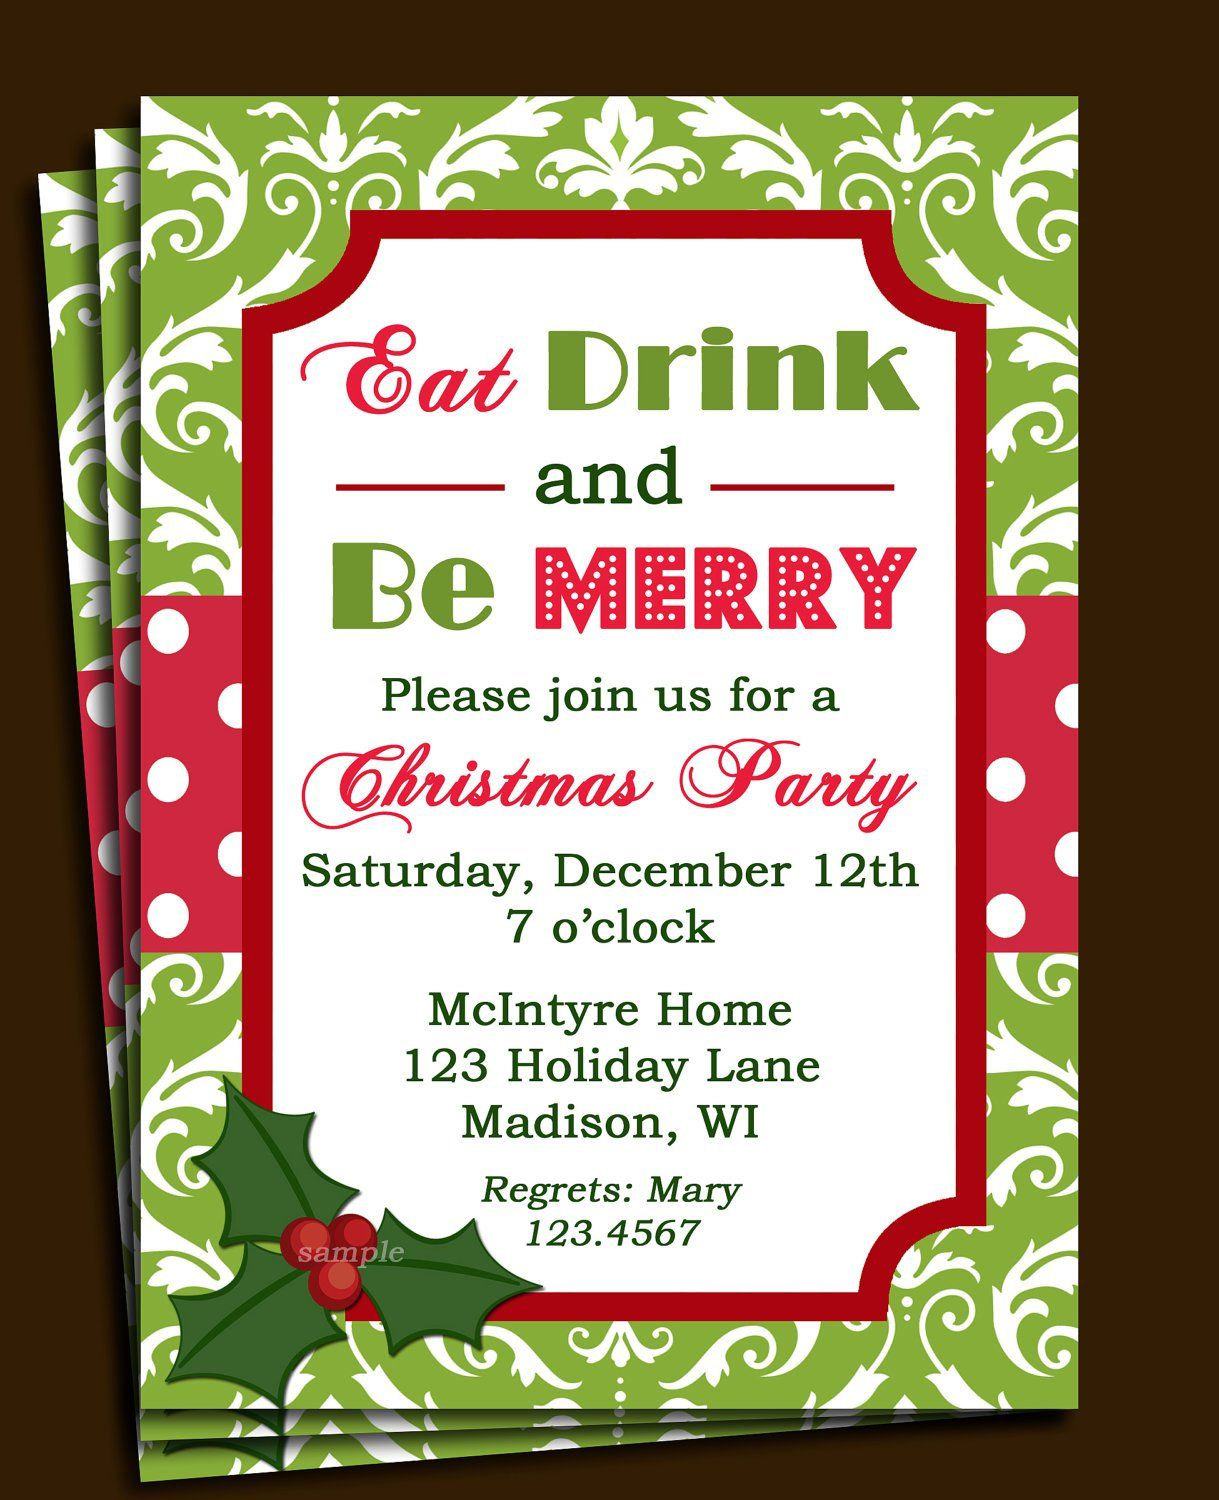 Free Christmas Invitations Printable Template Free Printable Christmas Party  Invitations Templates Cimvitation, Printable Christmas Invitation Holiday  ...  Company Party Invitation Templates